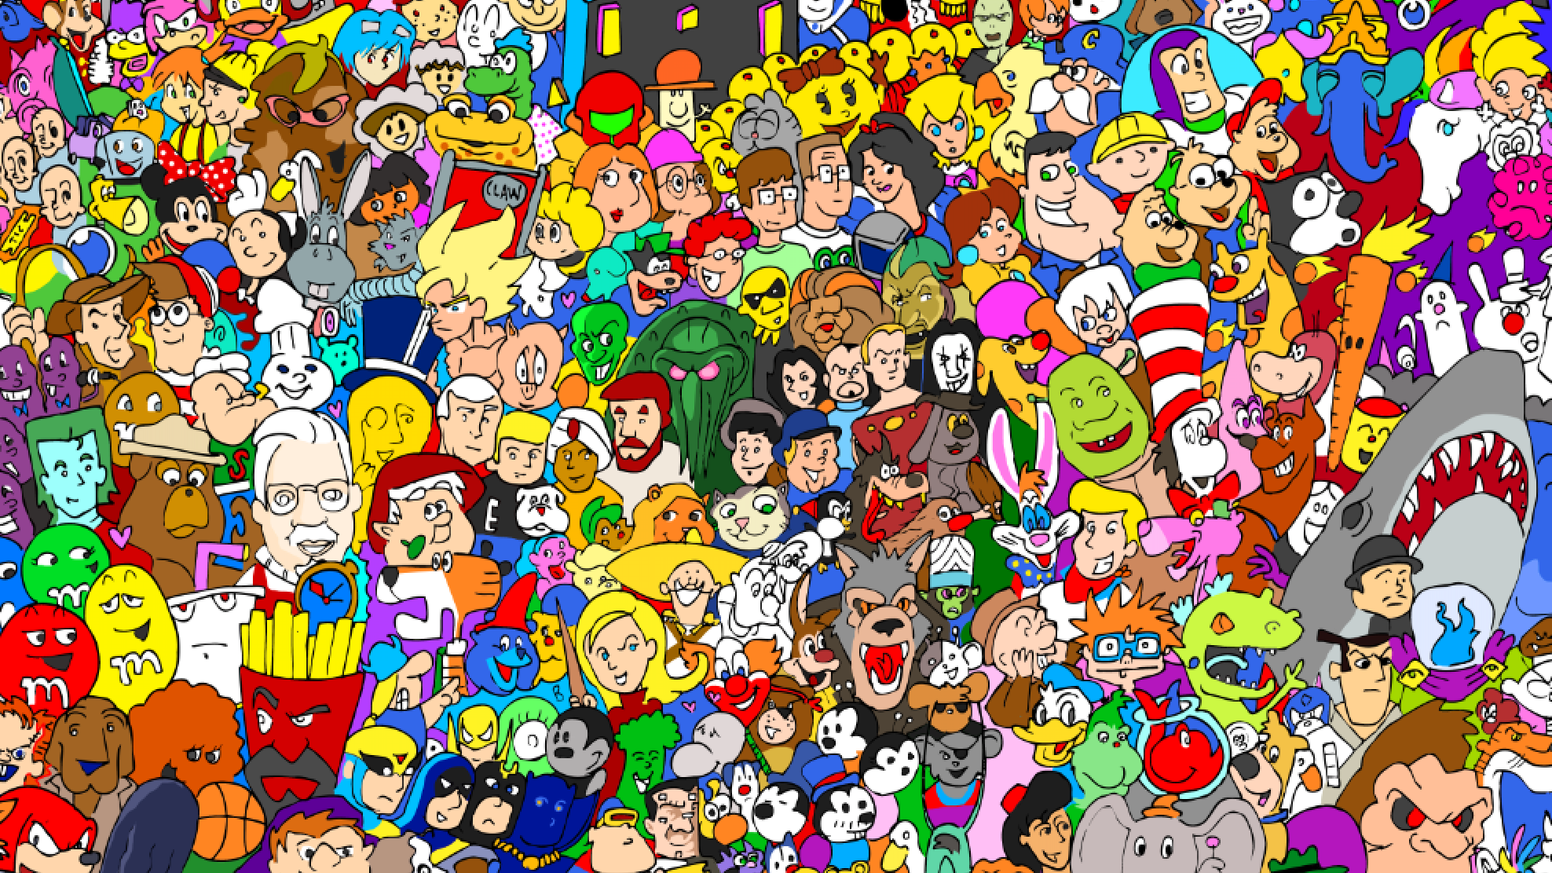 The Entire Cartoon Universe By Ray Sumser Kickstarter